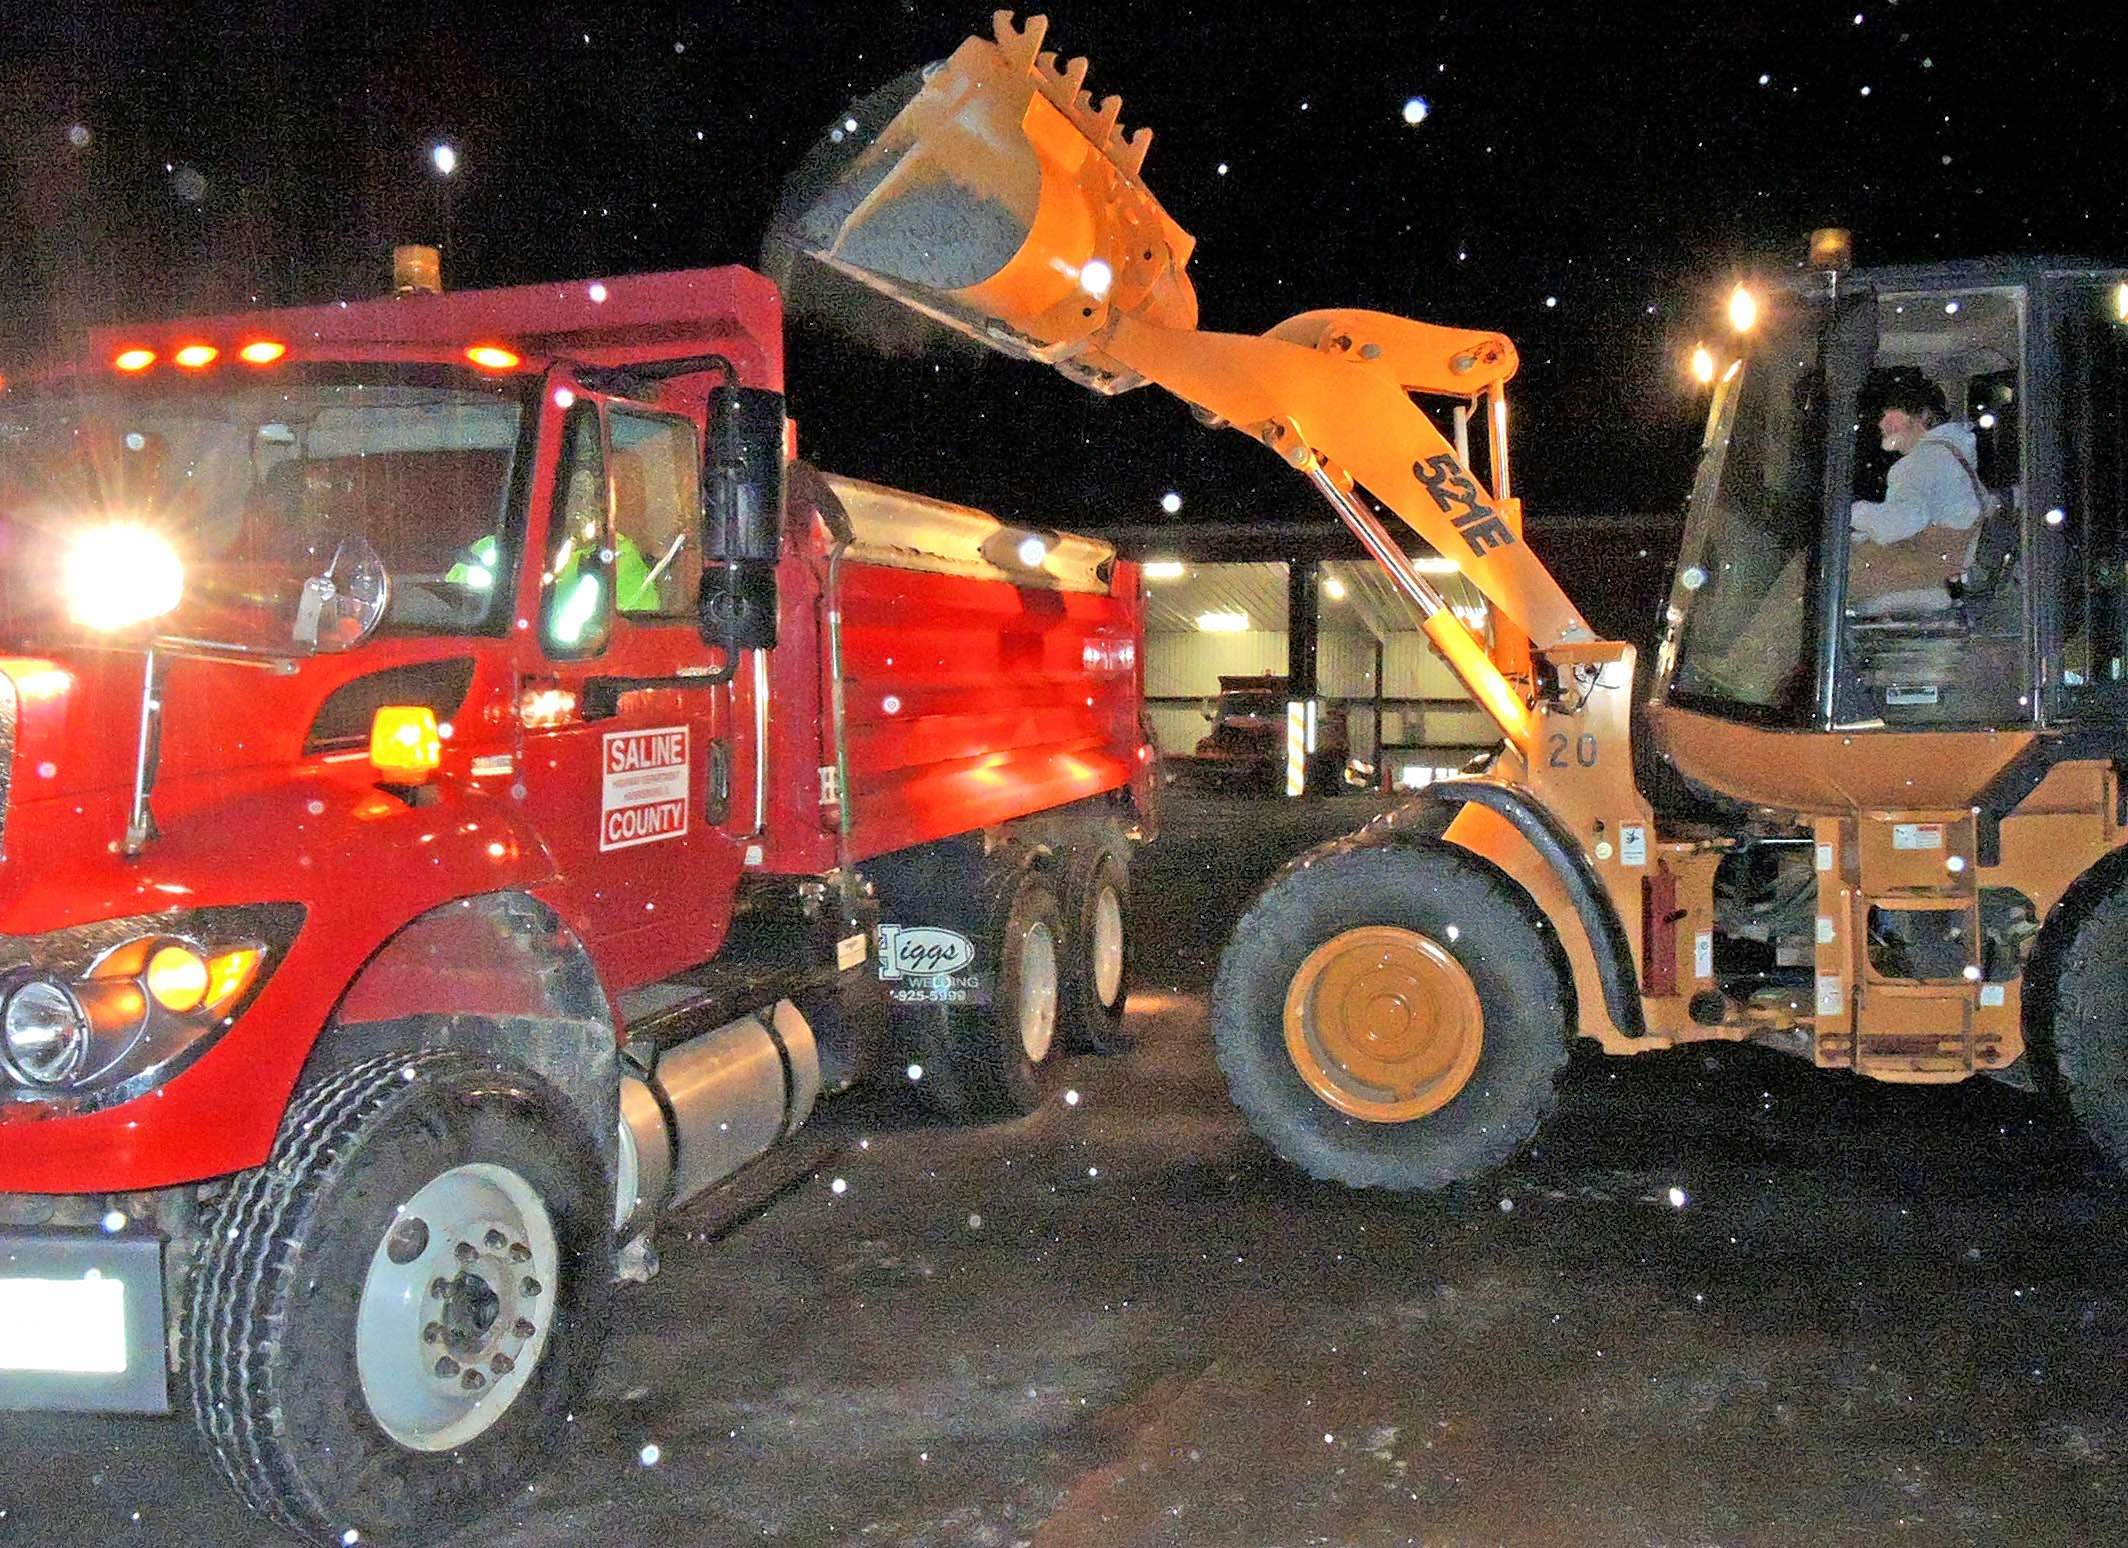 Saline County Highway Department foreman Richard Simpson loads salt onto a truck driven by fellow employee Todd Church Tuesday night at the department's stockpile. The salt was applied to the most hazardous locations, including College Road and Harco Road in anticipation of freezing rain throughout the night.